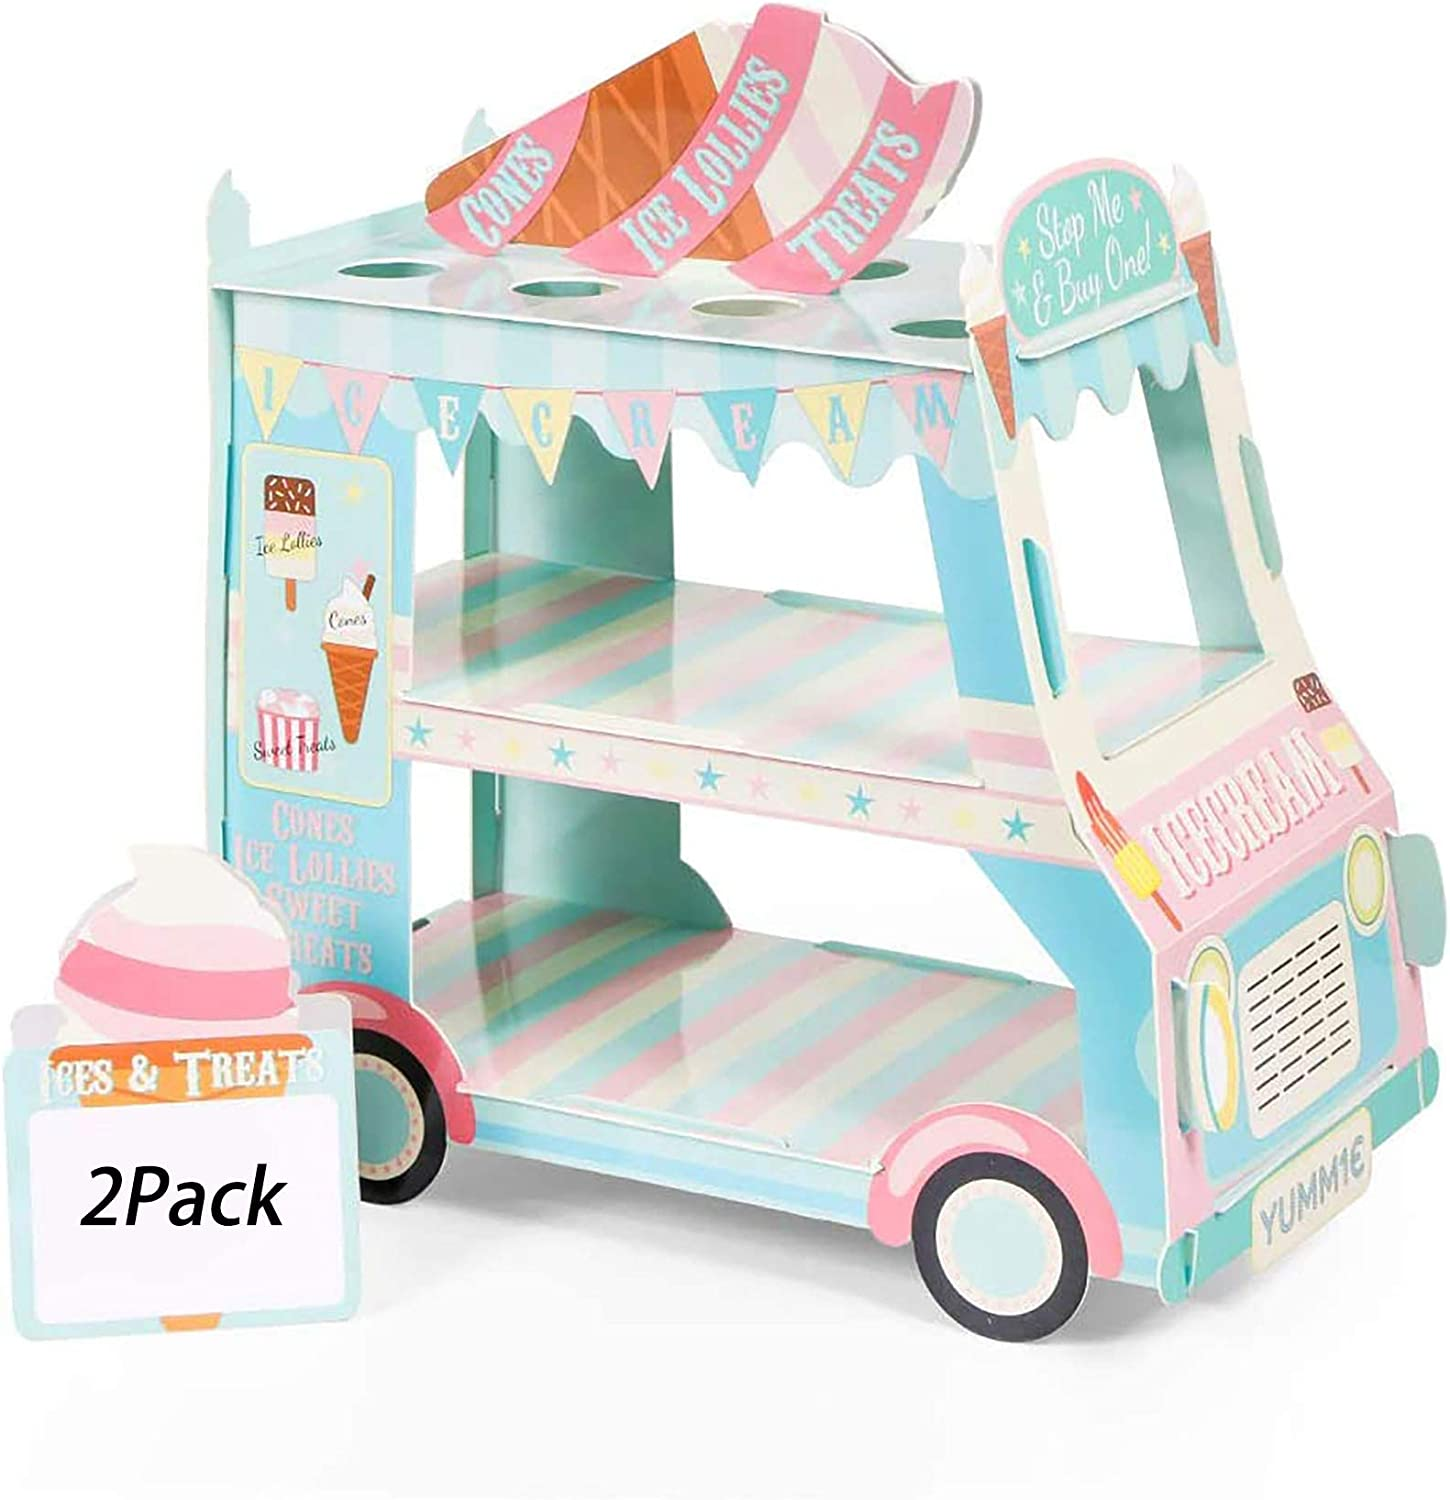 3 Tier Van Cake Stand, Ice Cream Van Stand, Bus Cupcake Stands, Ice Cream Decorations for Kids Birthday Party, Baby Showers, Easter (2Packs)